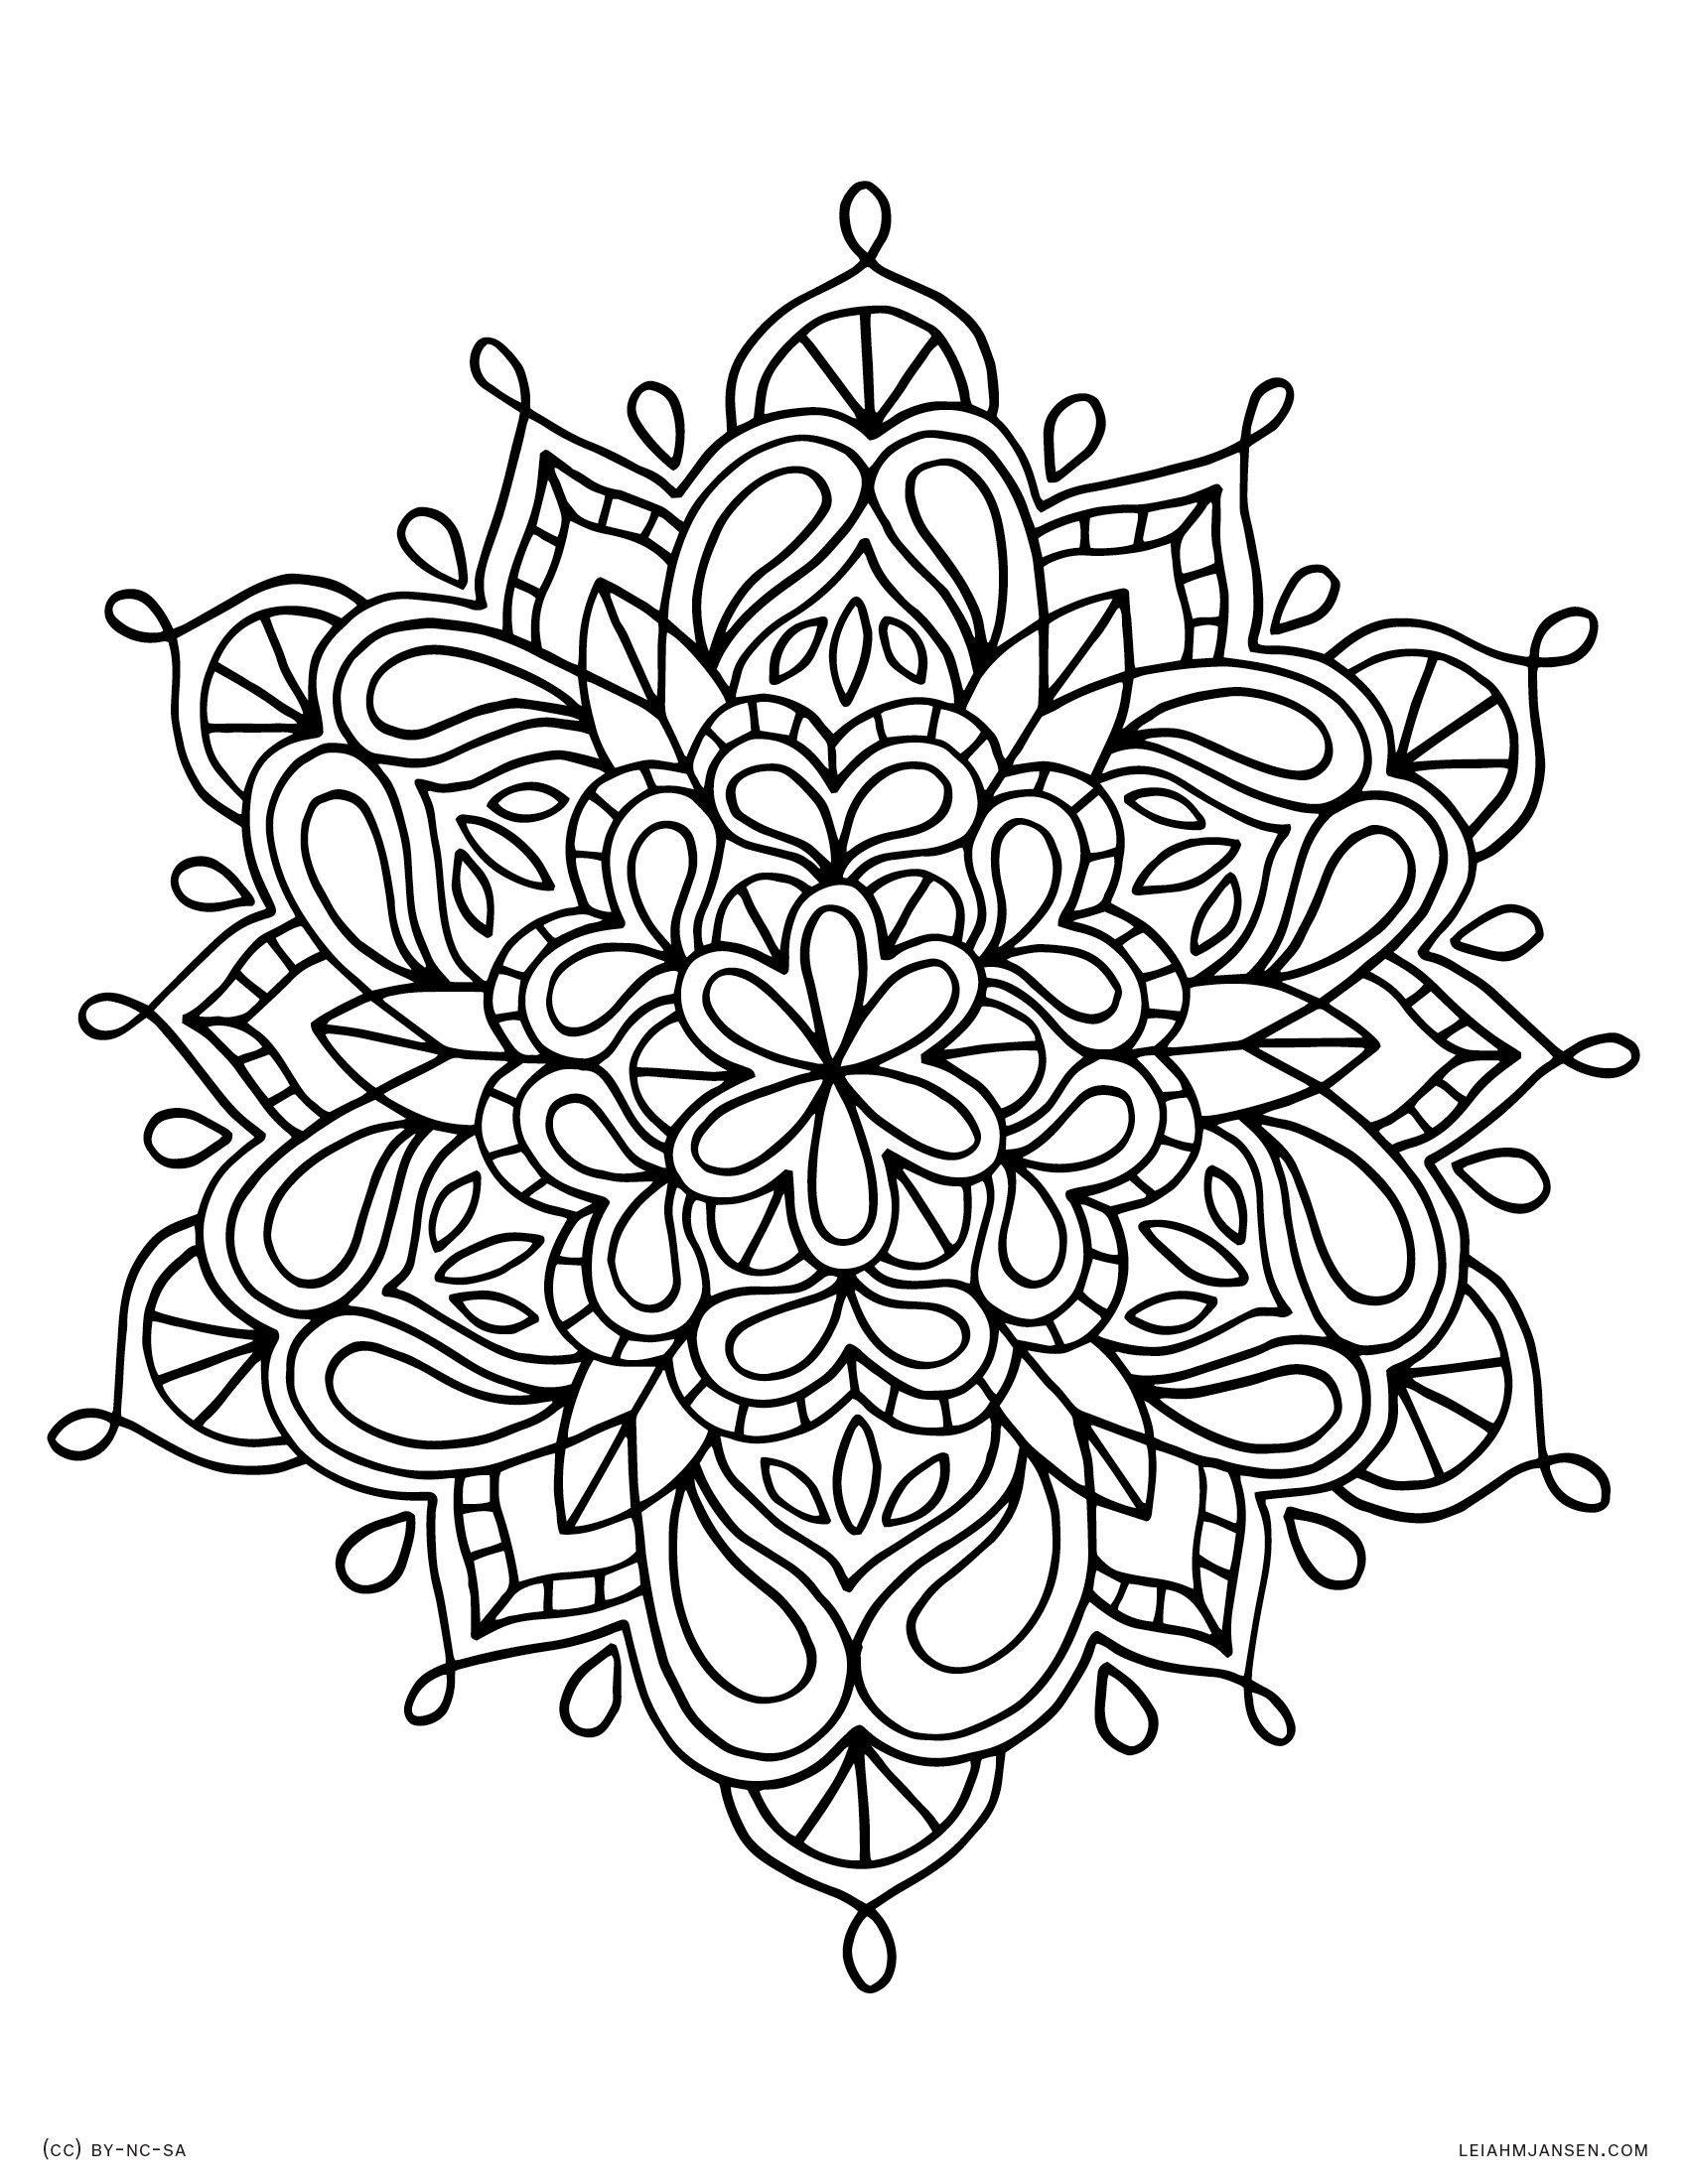 free printable mandala pages the coolest free coloring pages for adults pages mandala free printable